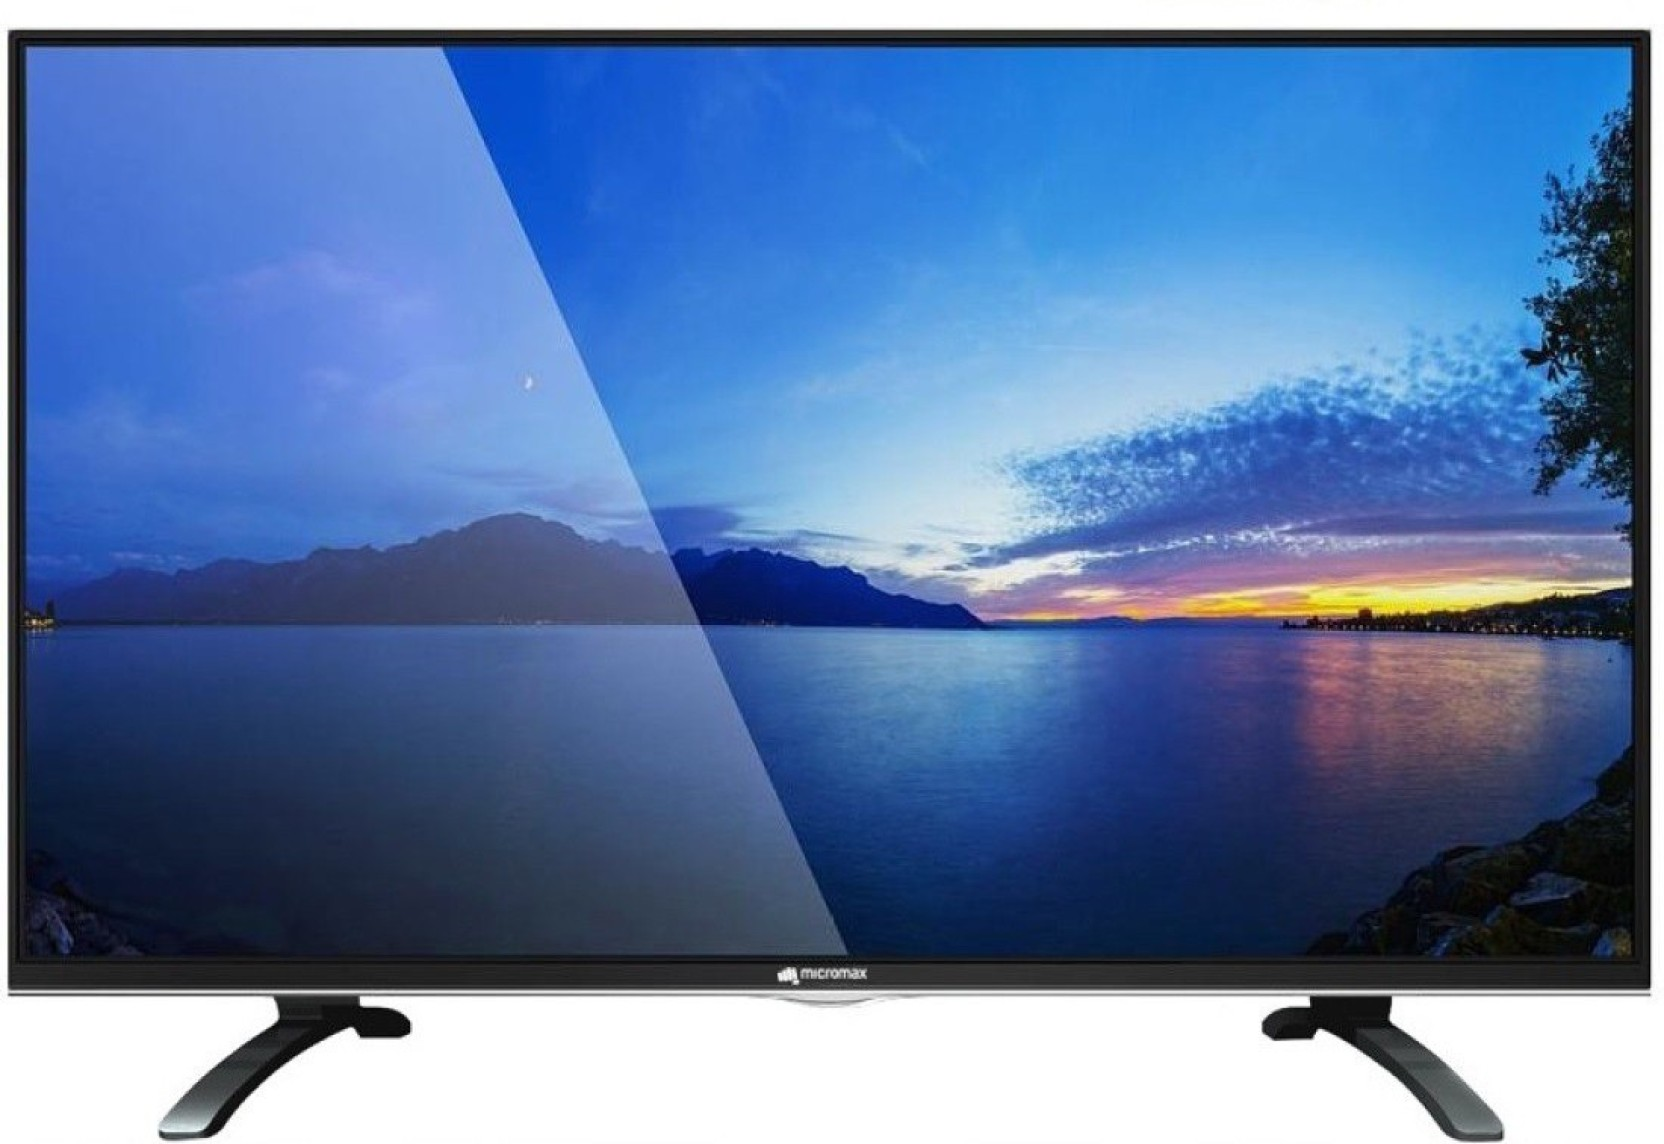 micromax canvas 101cm 40 inch full hd led smart tv online at best prices in india. Black Bedroom Furniture Sets. Home Design Ideas